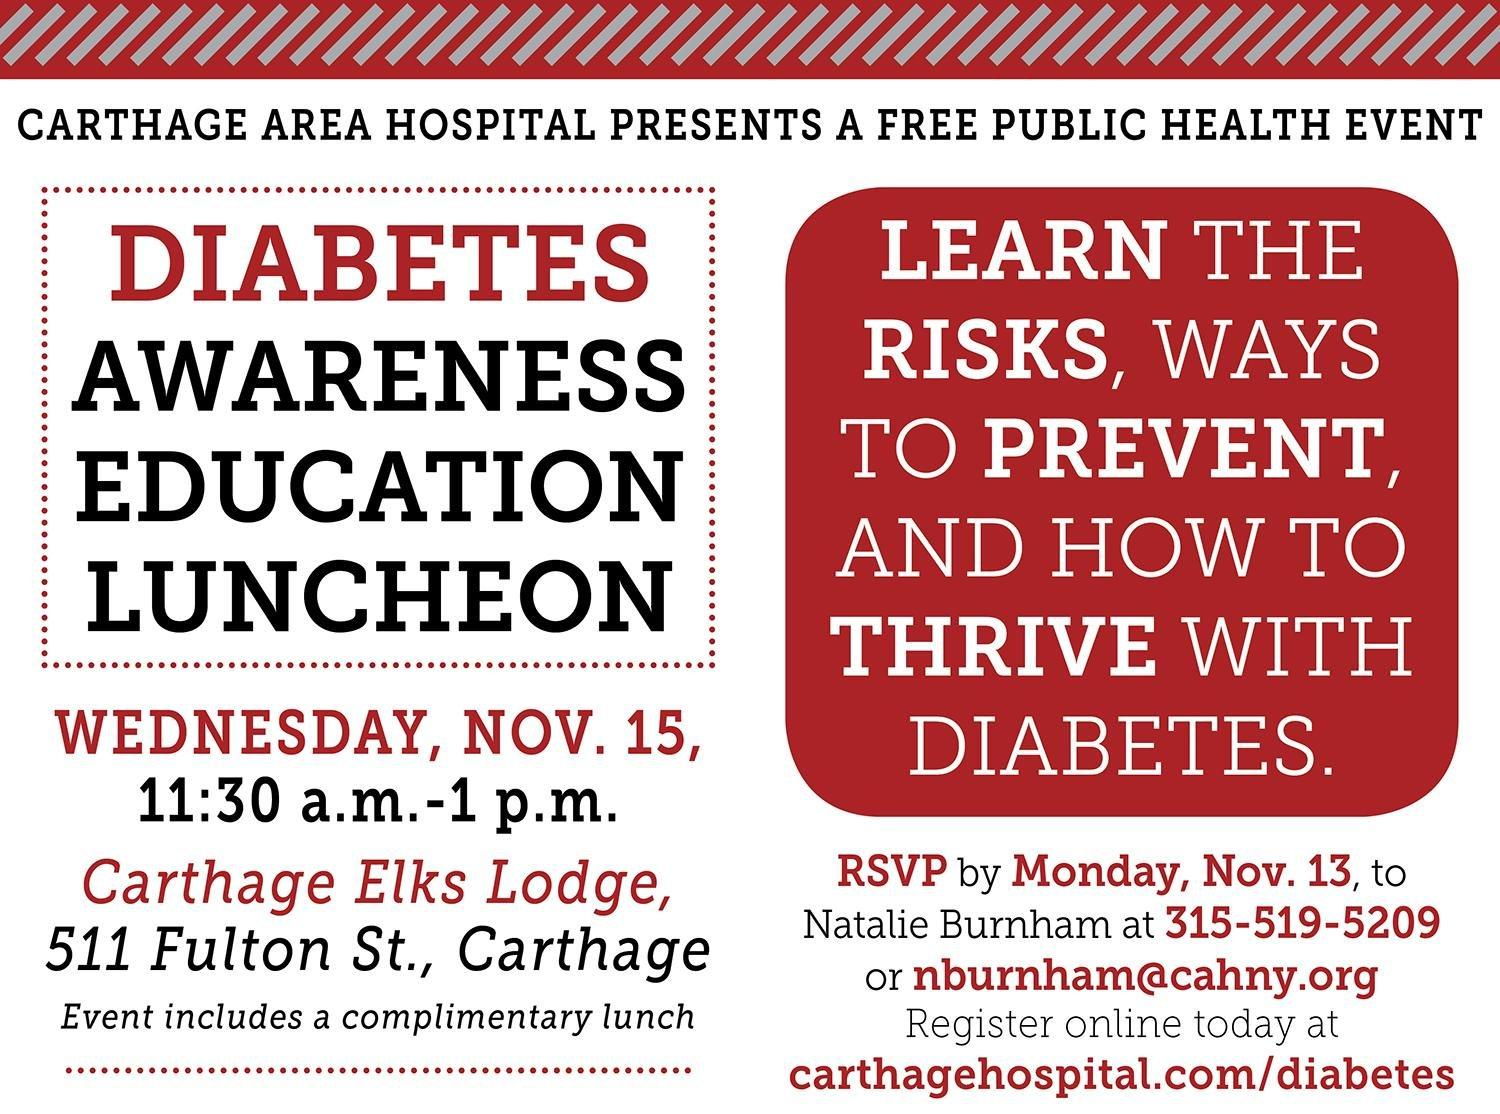 Diabetes Awareness Luncheon Offers Valuable Education for All